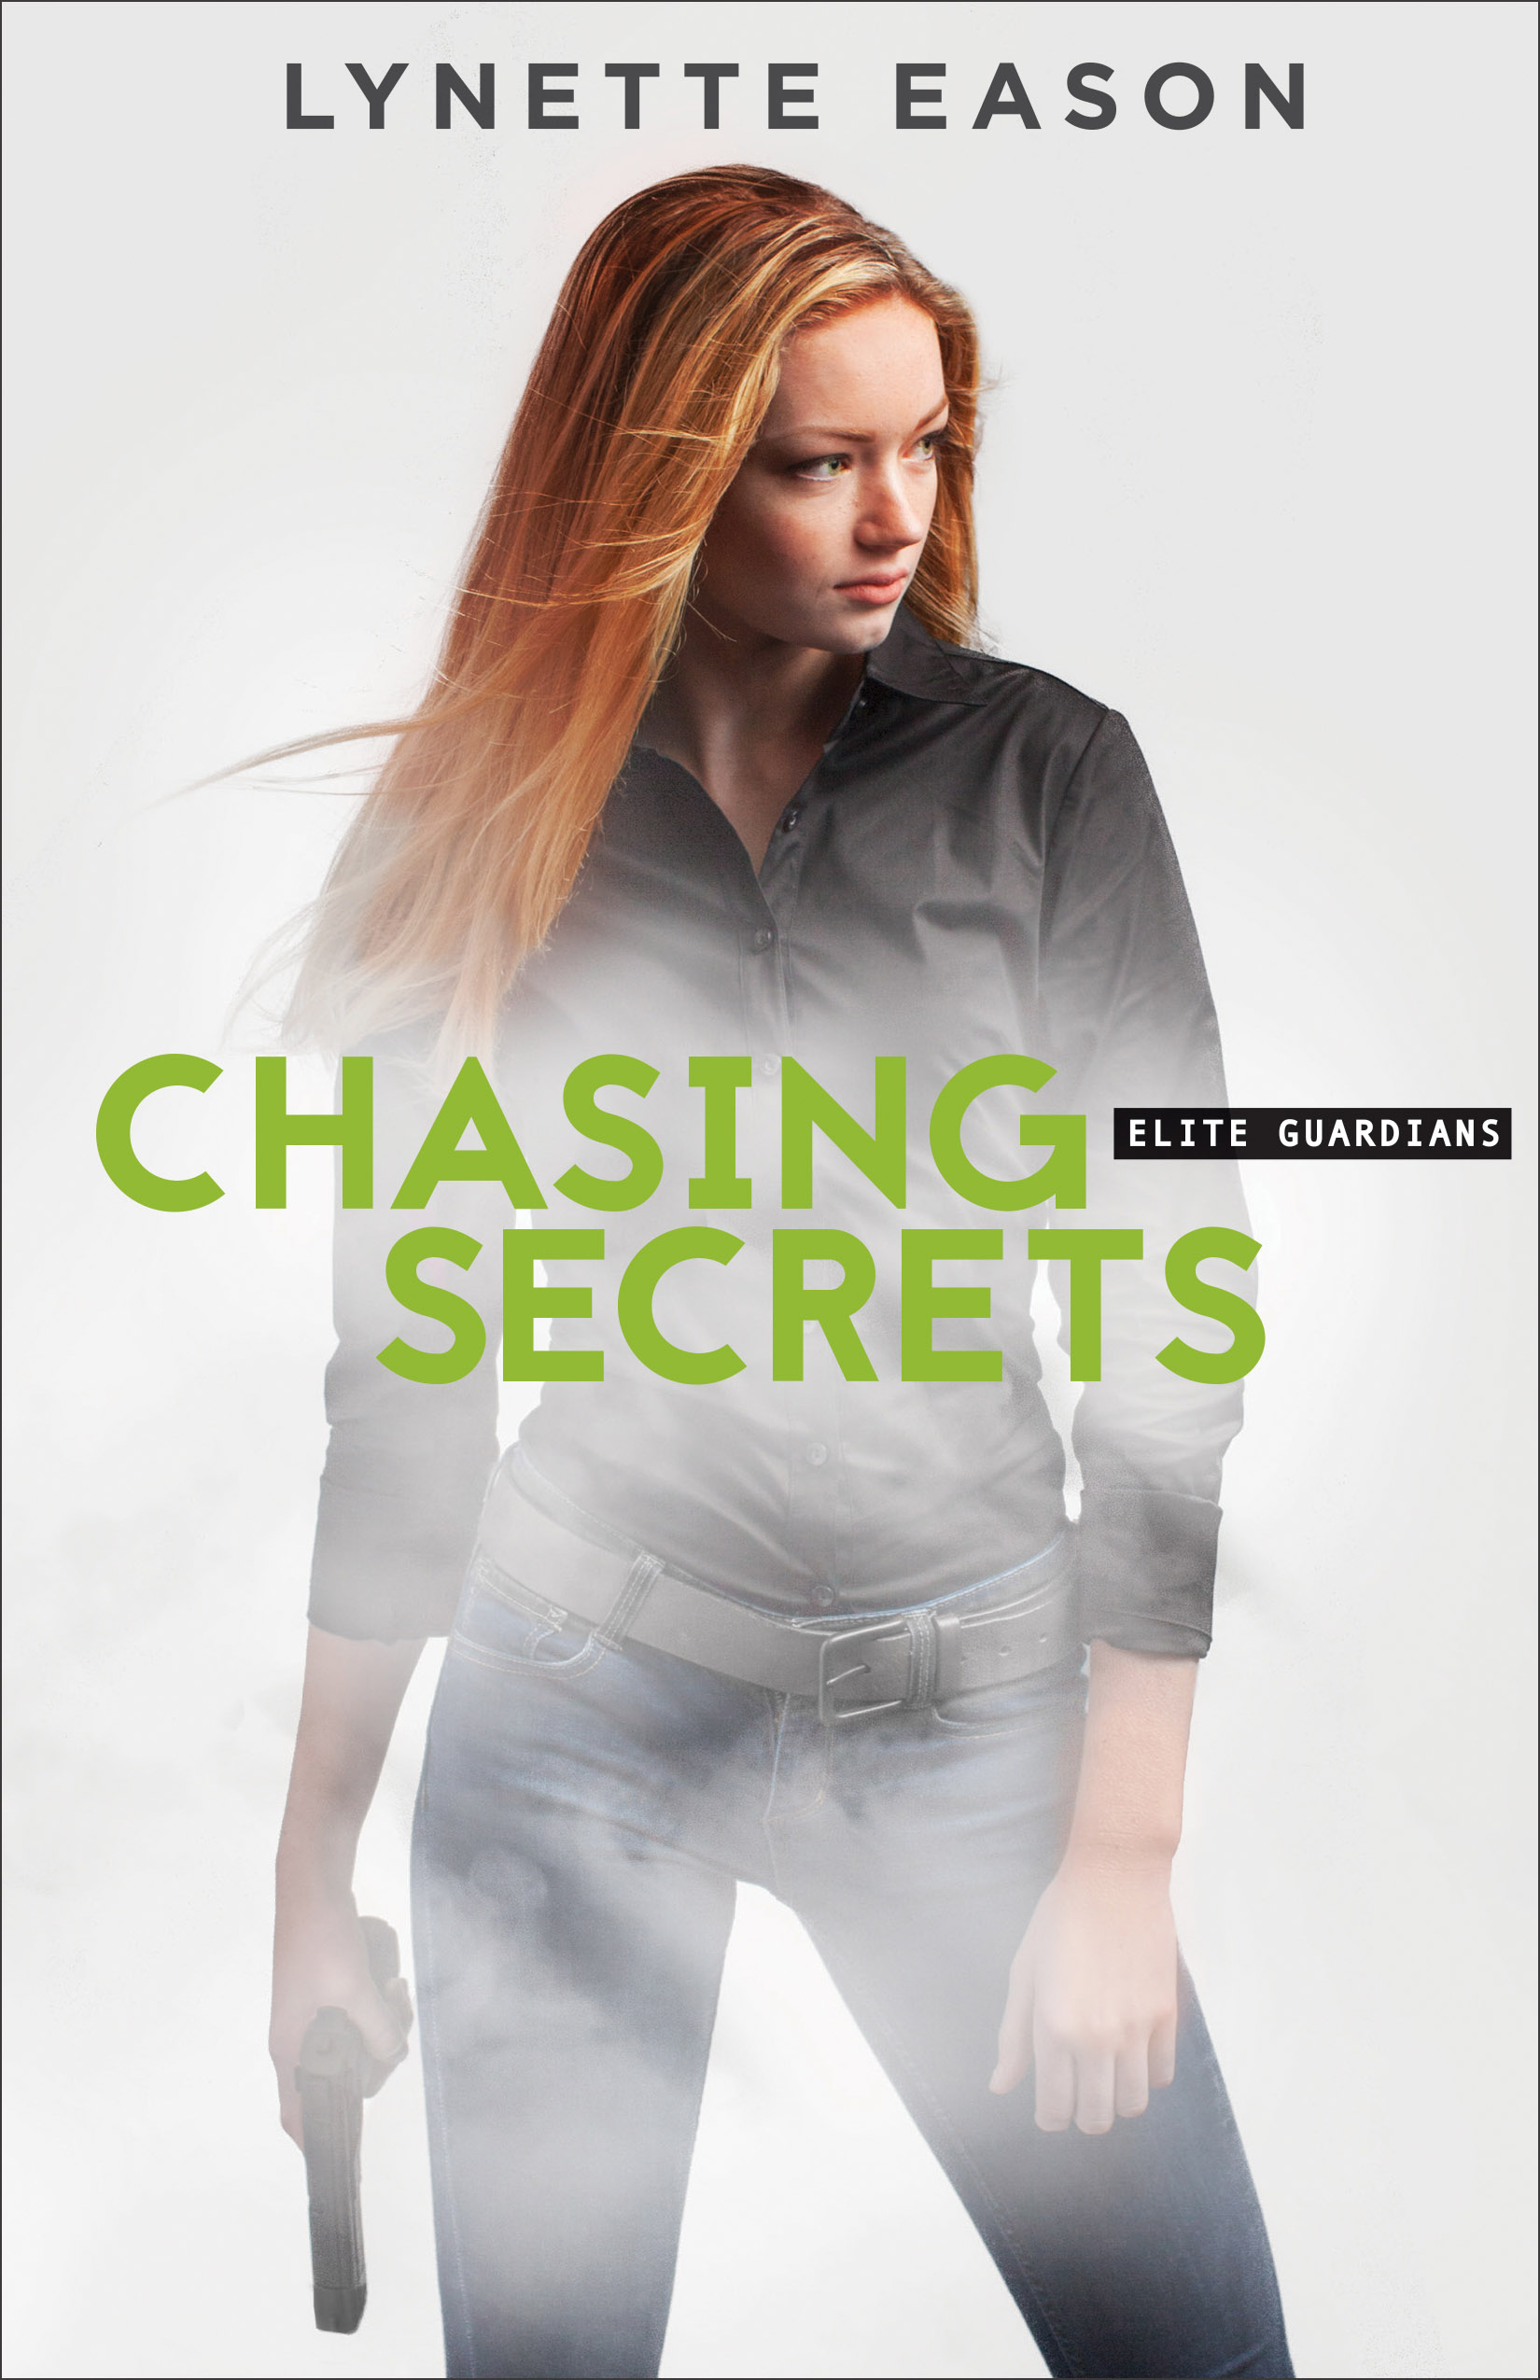 Book review of Chasing Secrets by Lynette Eason (Revell) by papertapepins.